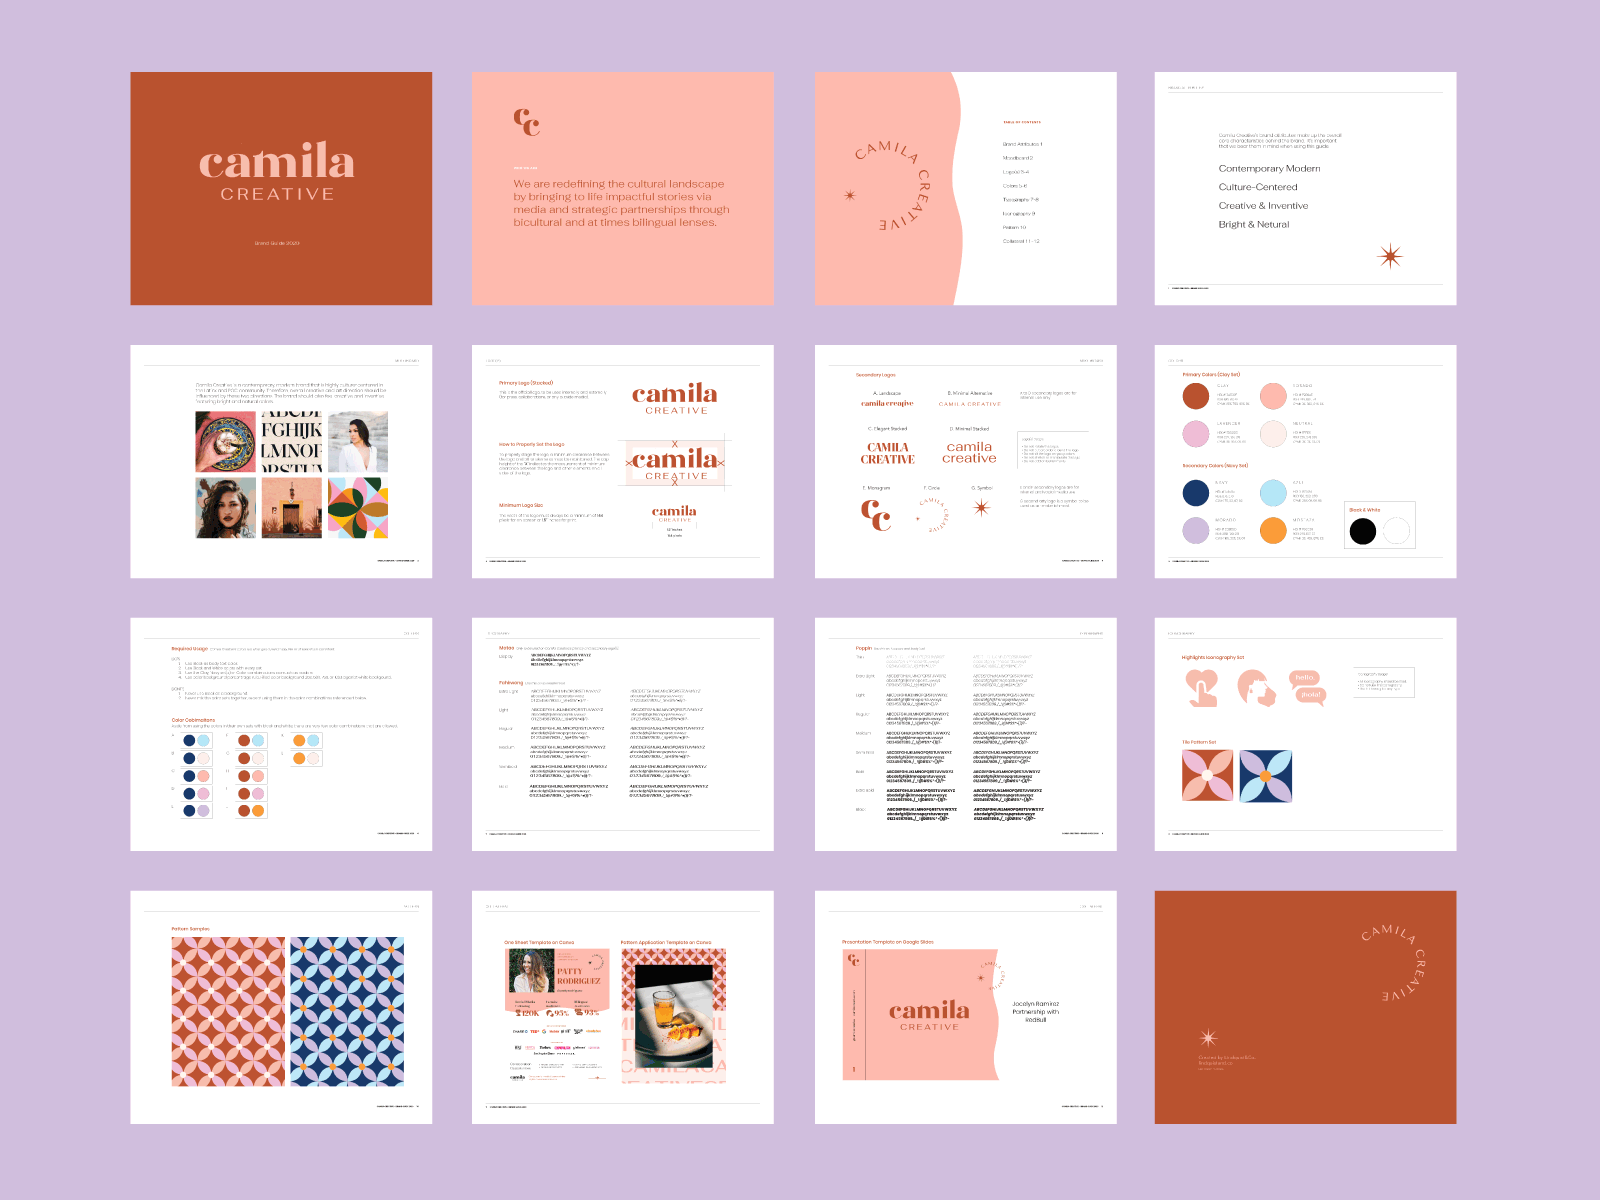 Camila Creative Brand Guidelines